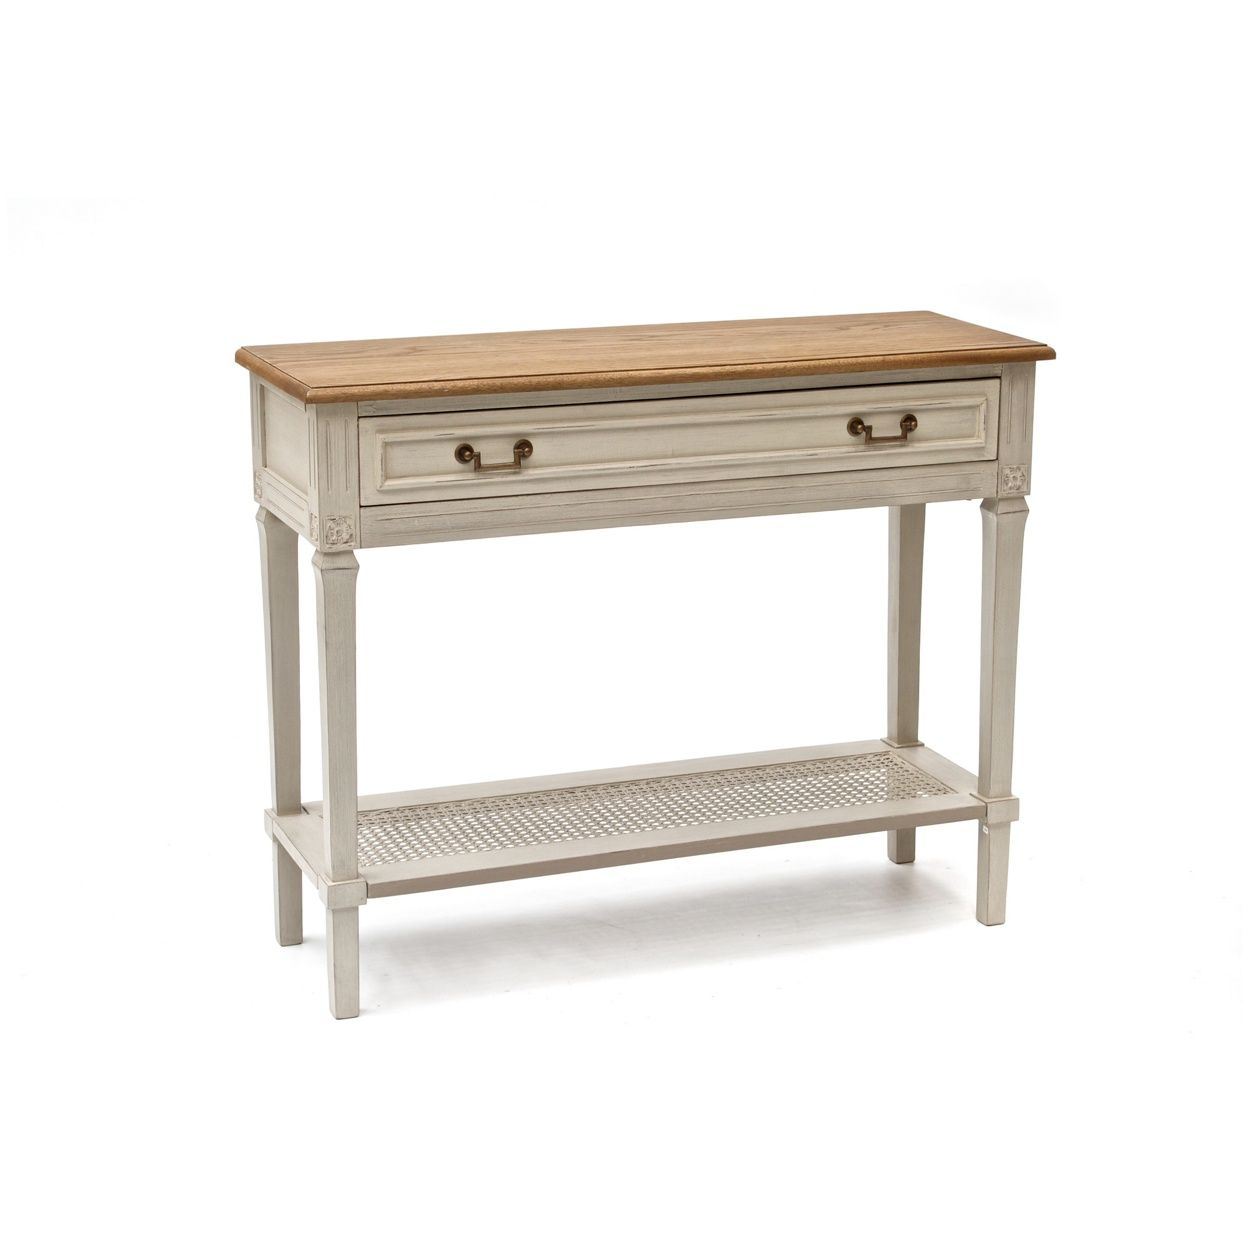 Willis & Gambier Oak And Painted 'Florence' Console Table